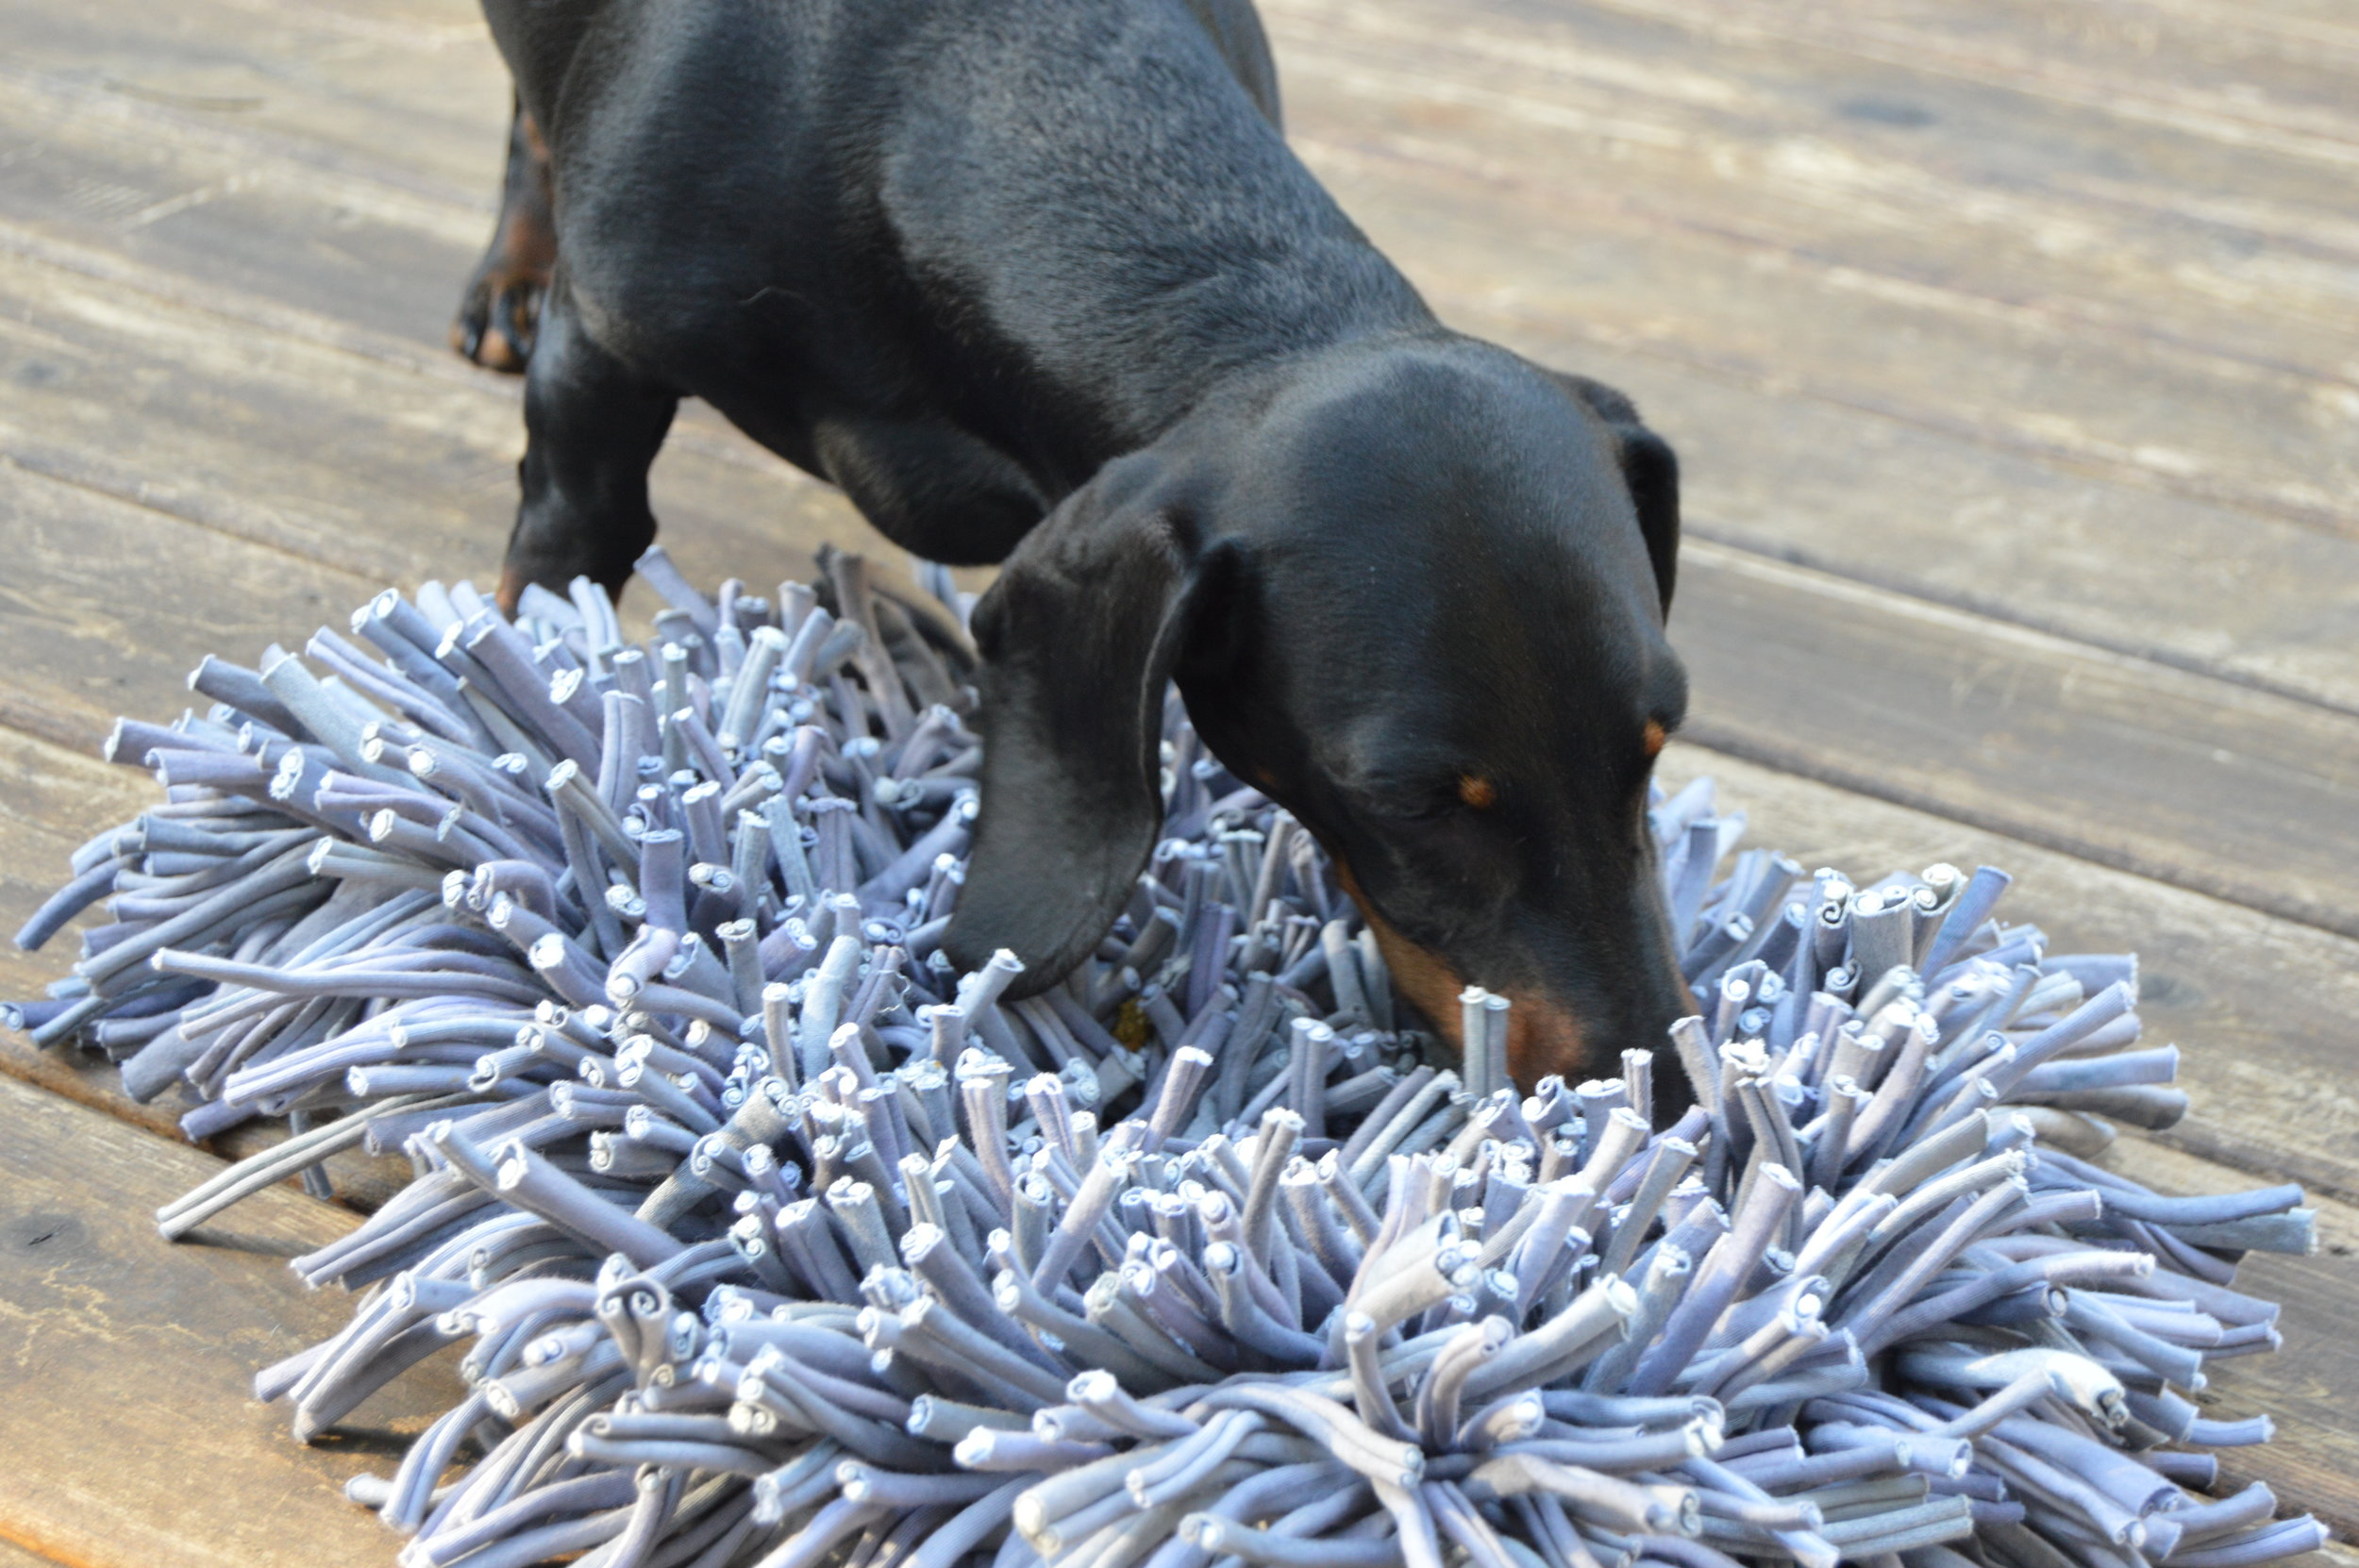 Walter focuses on finding food in his Snuffle Mat.